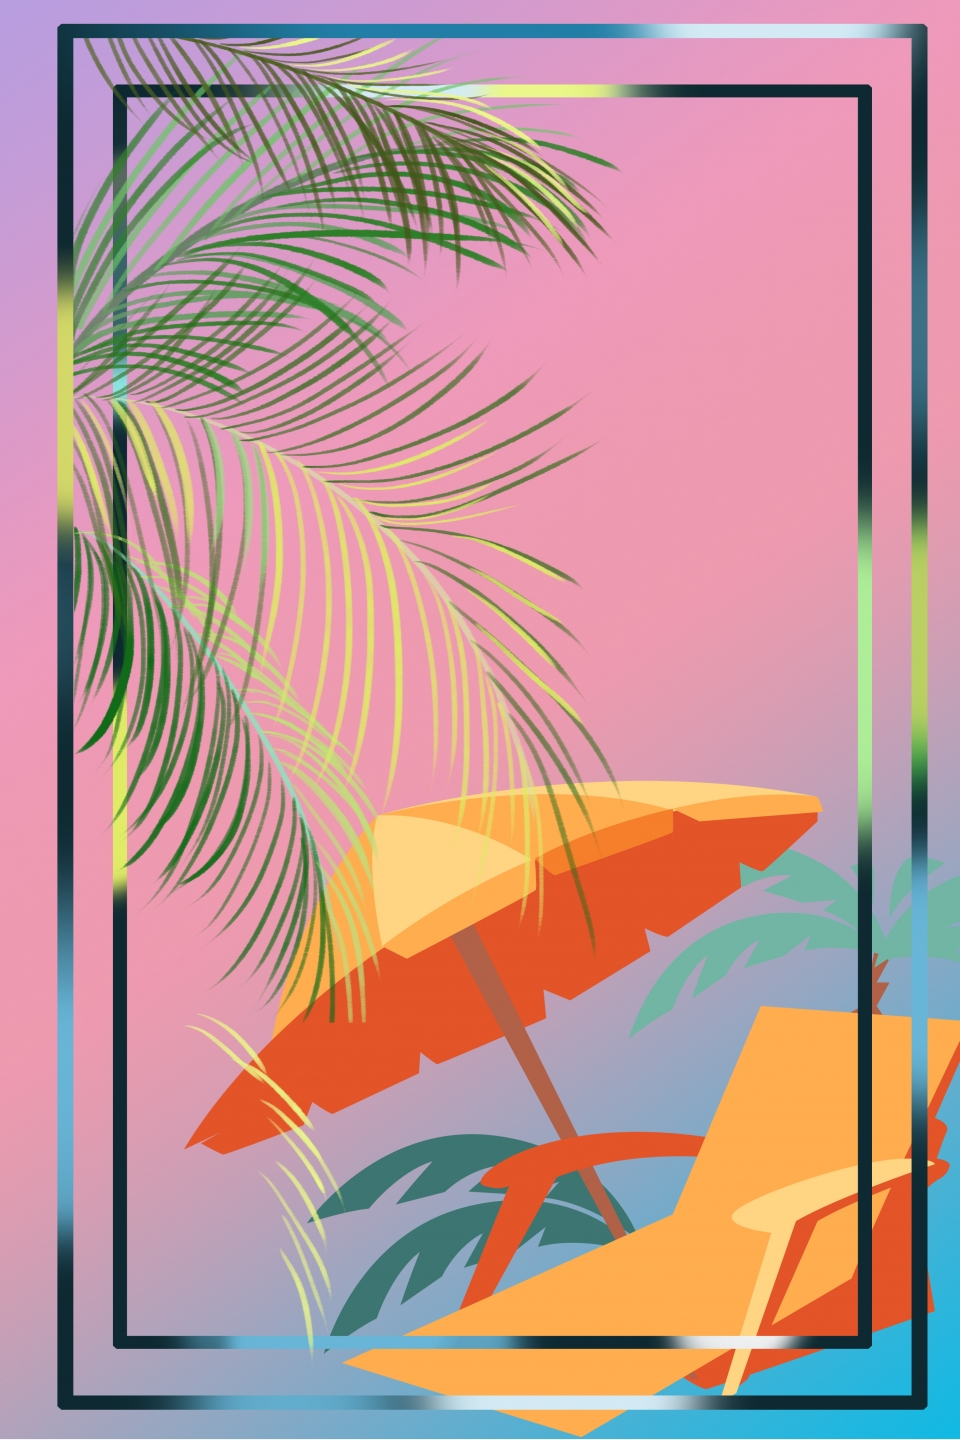 Summer Hawaiian Poster Background Illustration Summer Hawaii Poster Background Image For Free Download A wide variety of hawaiian backgrounds options are available to you, such as home, airplane. https pngtree com freebackground summer hawaiian poster background illustration 1040313 html